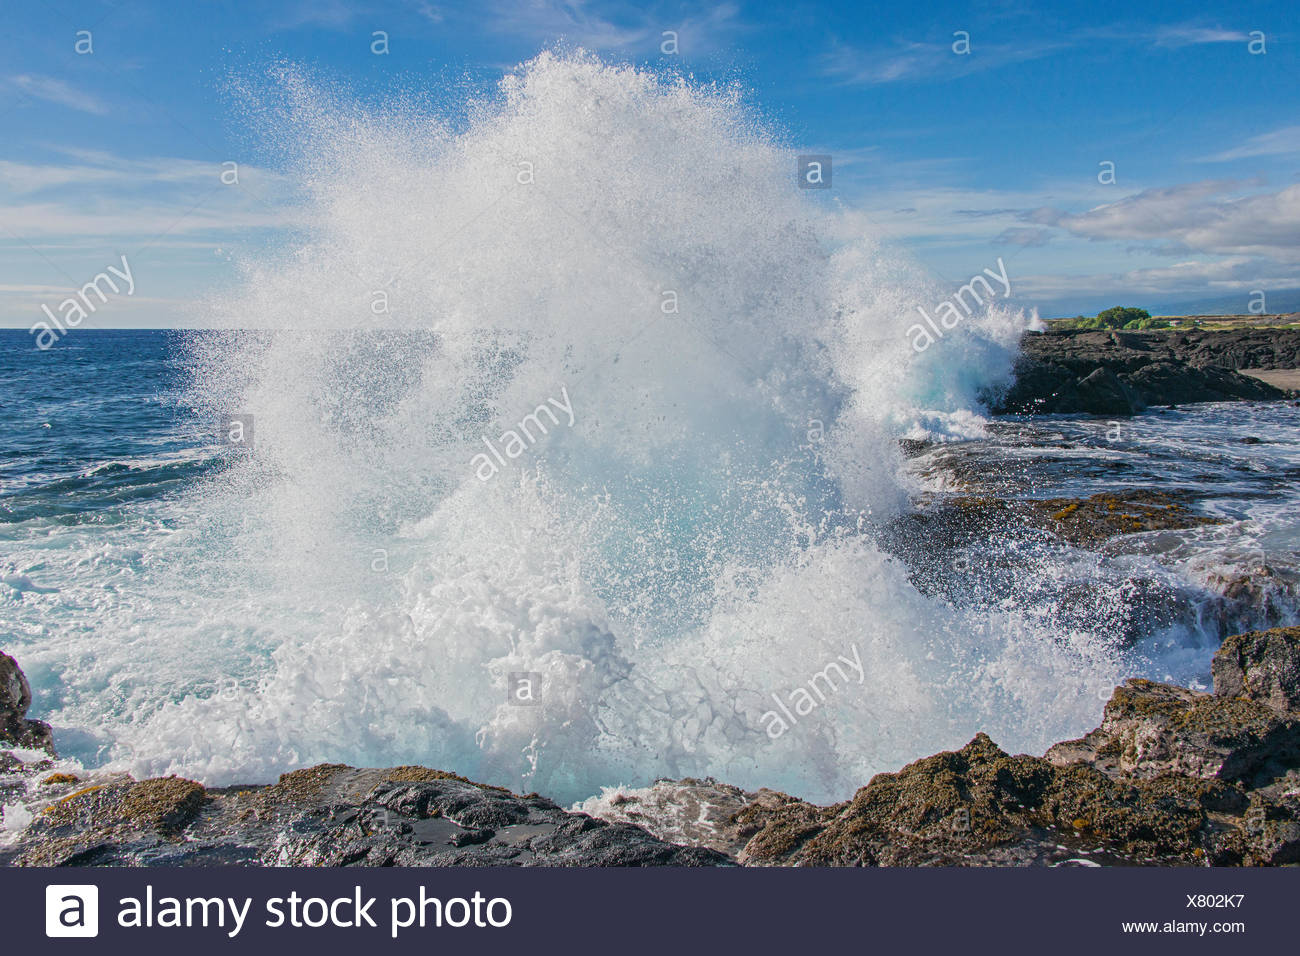 Pounding surf, Wawaloli Beach Park, Hawaii Island (Big Island). Hawaiian Islands, central Pacific Ocean, USA - Stock Image